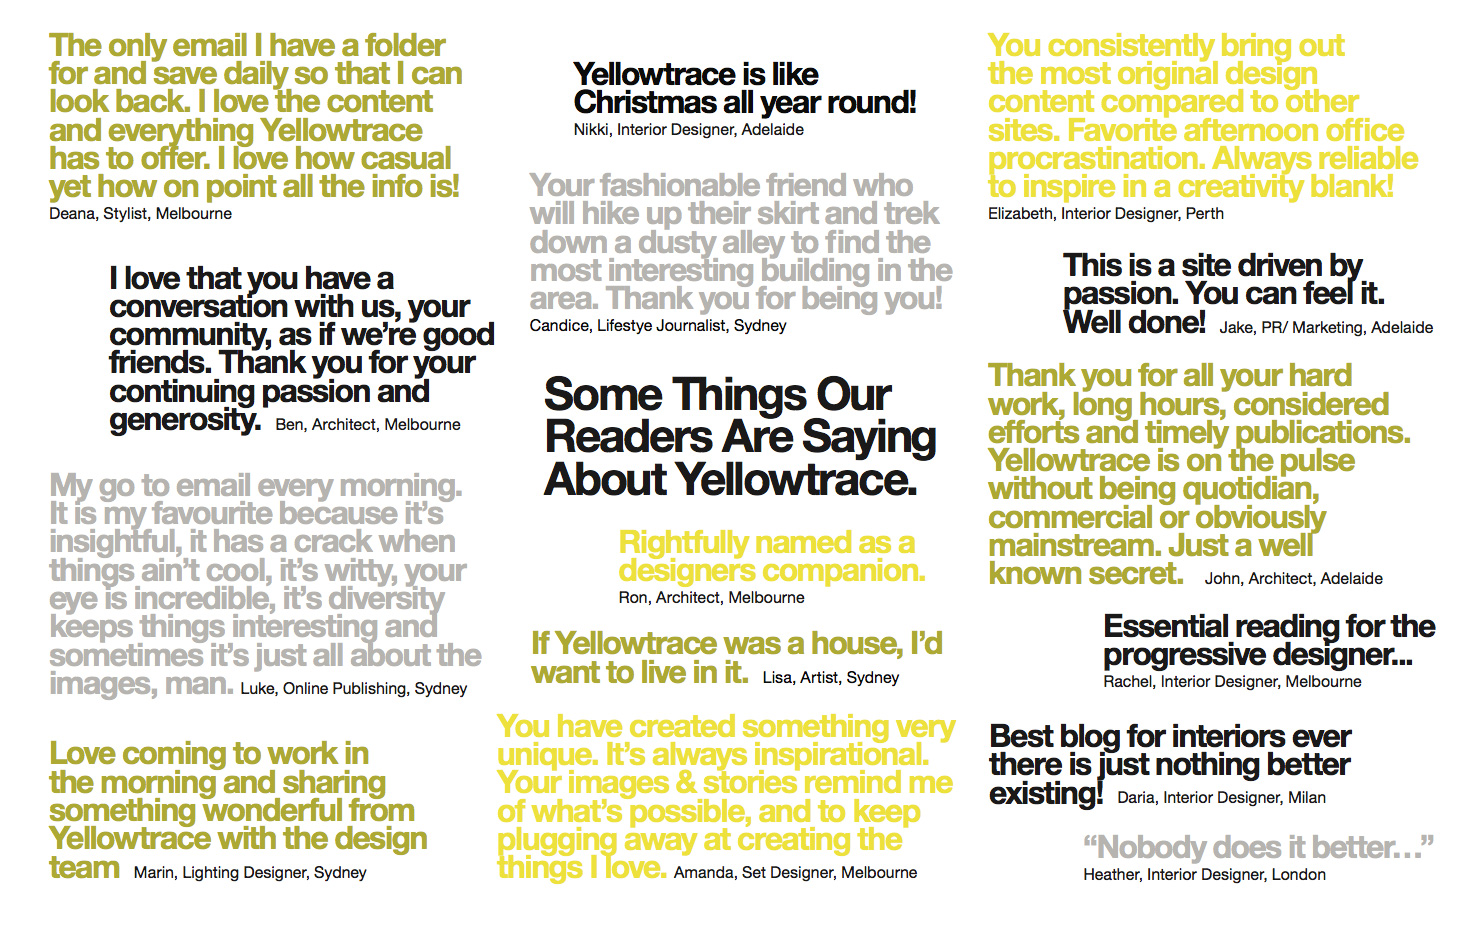 What Readers Are Saying About Yellowtrace